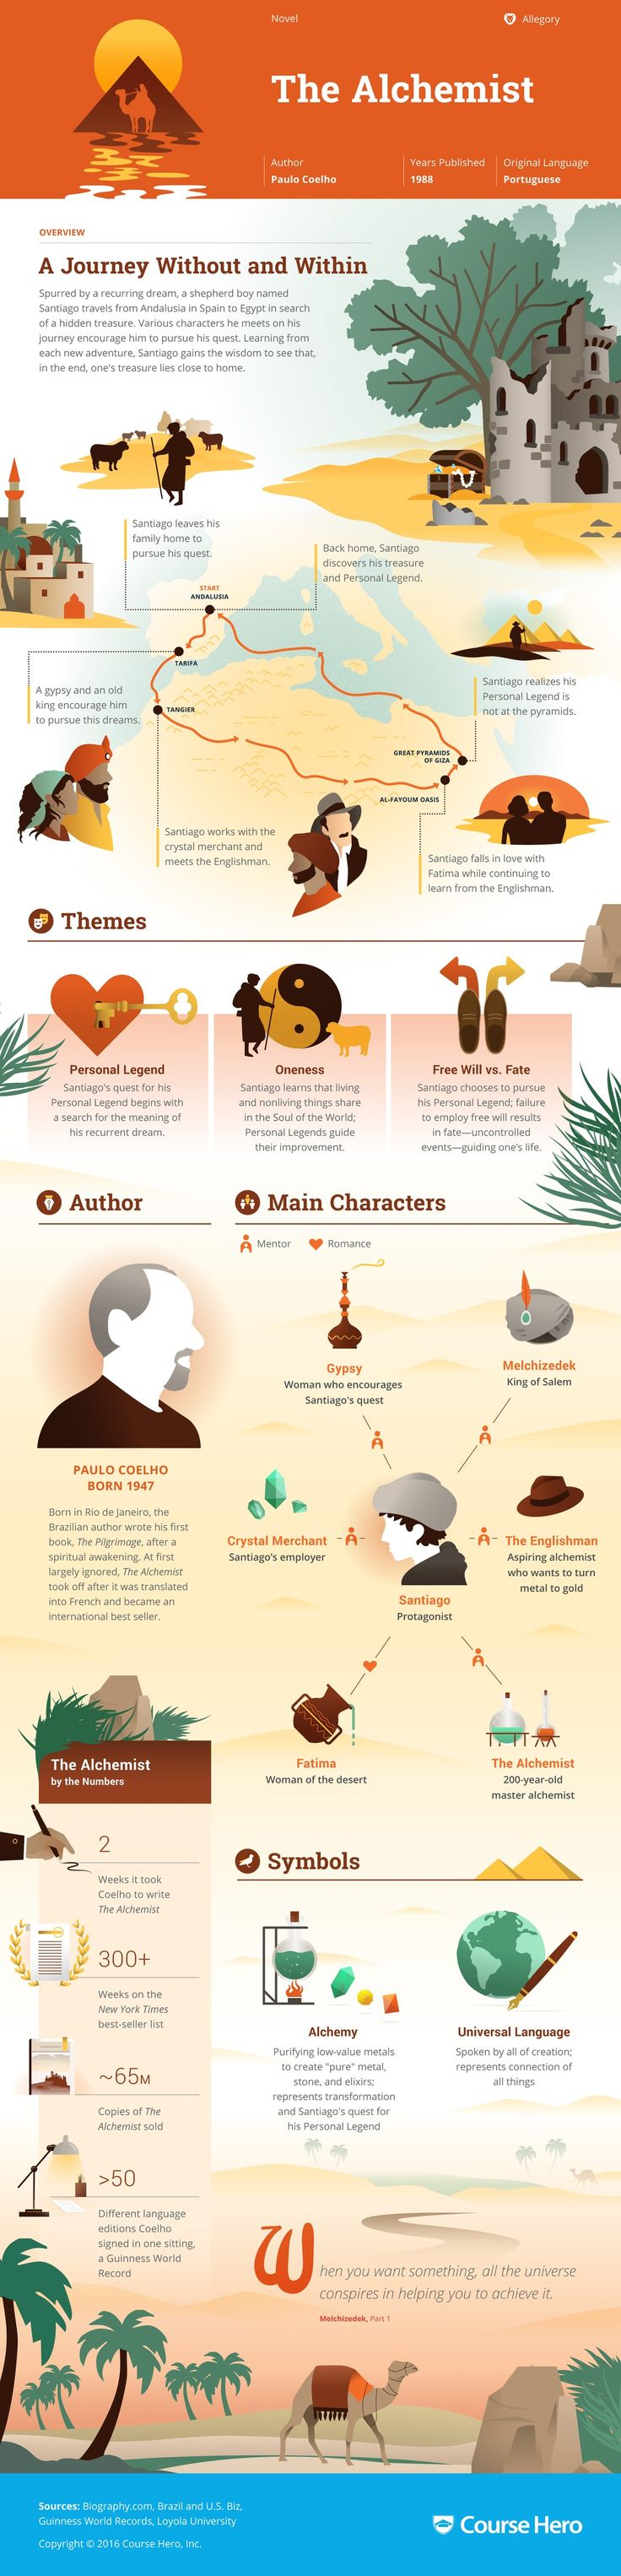 17 best ideas about the alchemist the alchemist study guide for paulo coelho s the alchemist including part summary character analysis and more learn all about the alchemist ask questions